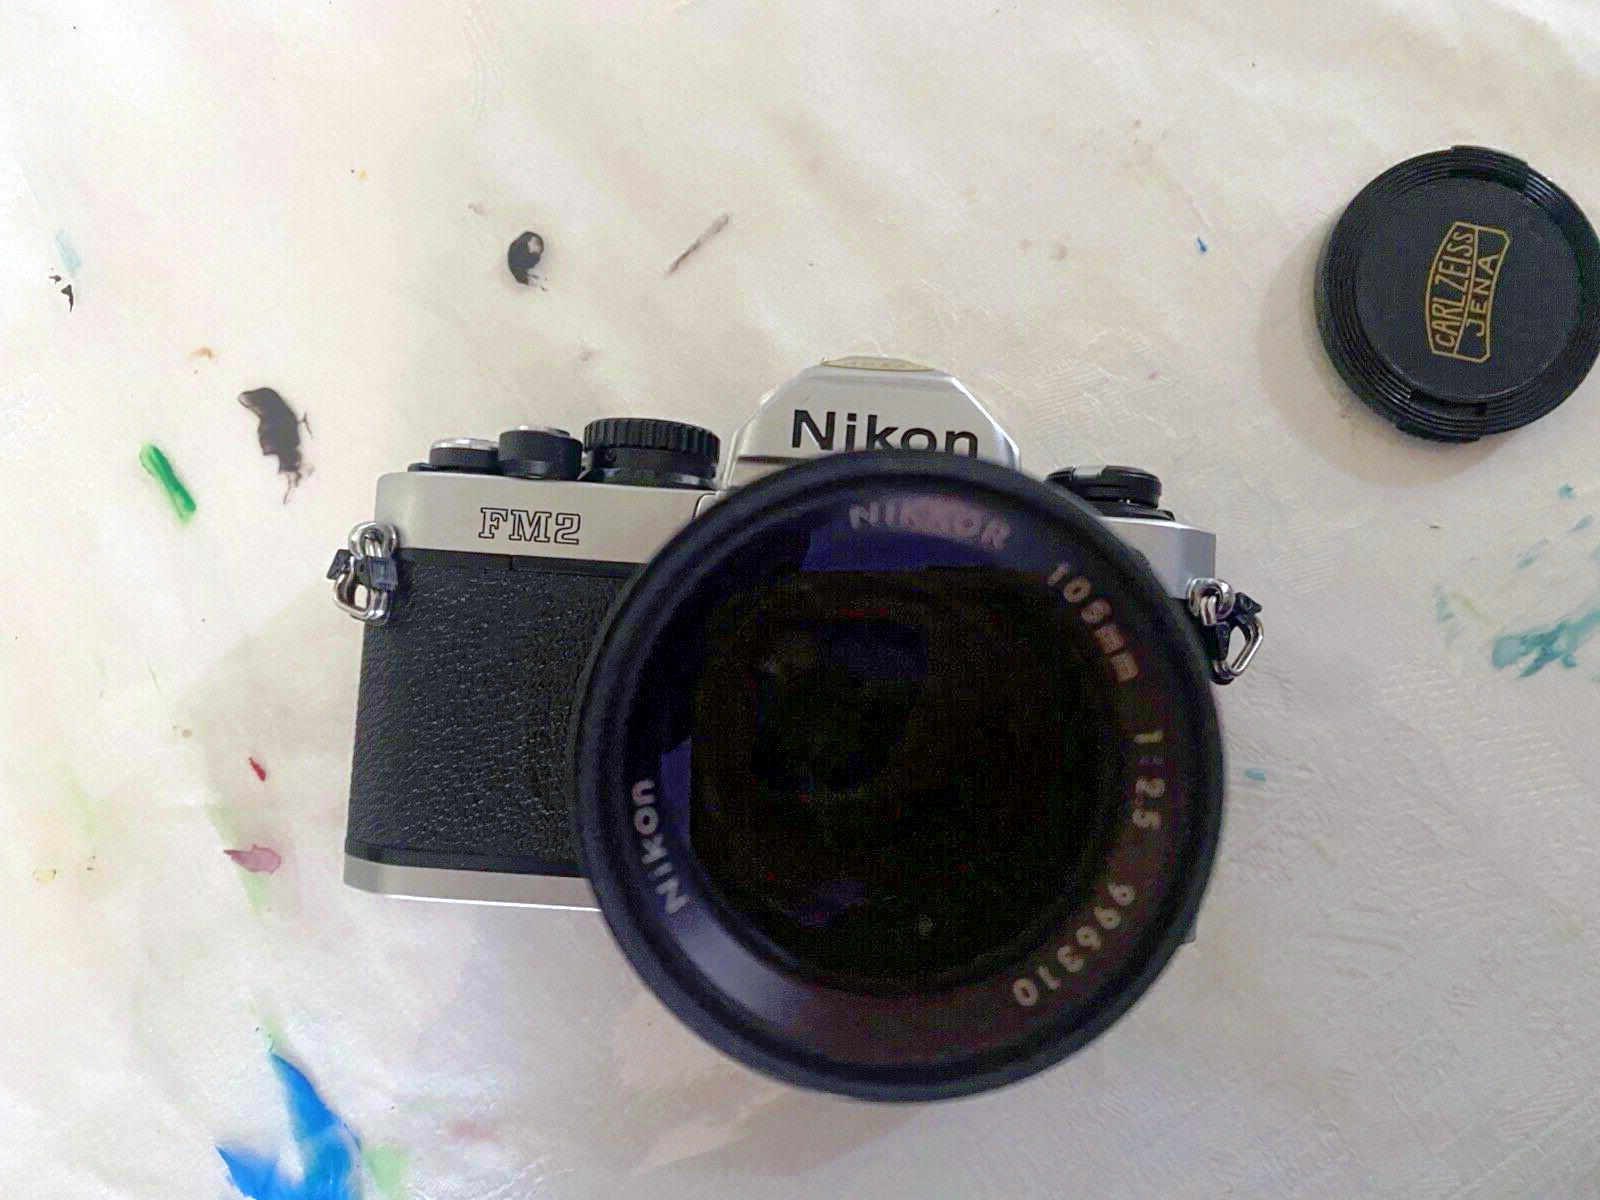 This should be Nikon-FM2-8.jpeg.  Is it missing?